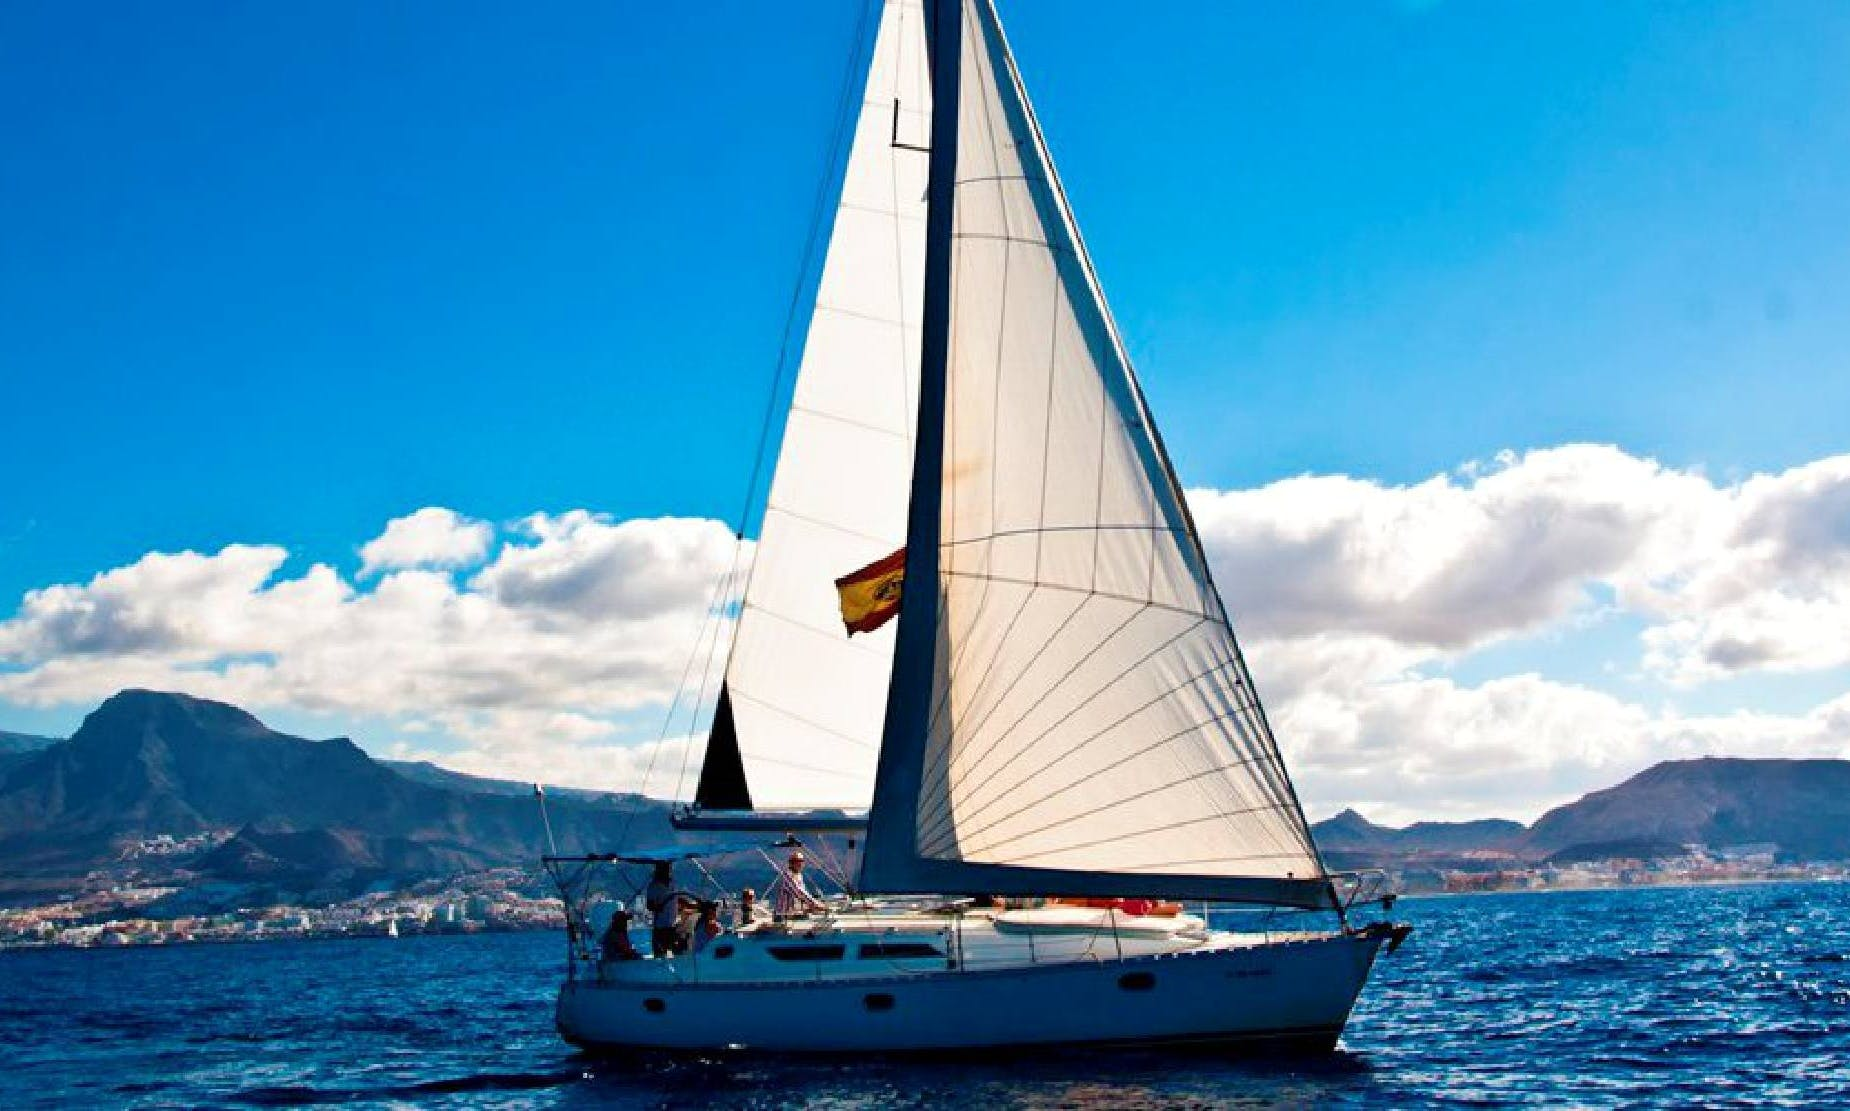 Tour Santa Cruz de Tenerife, Spain On-board a 39' Jeanneau Skyline 1 Cruising Monohull